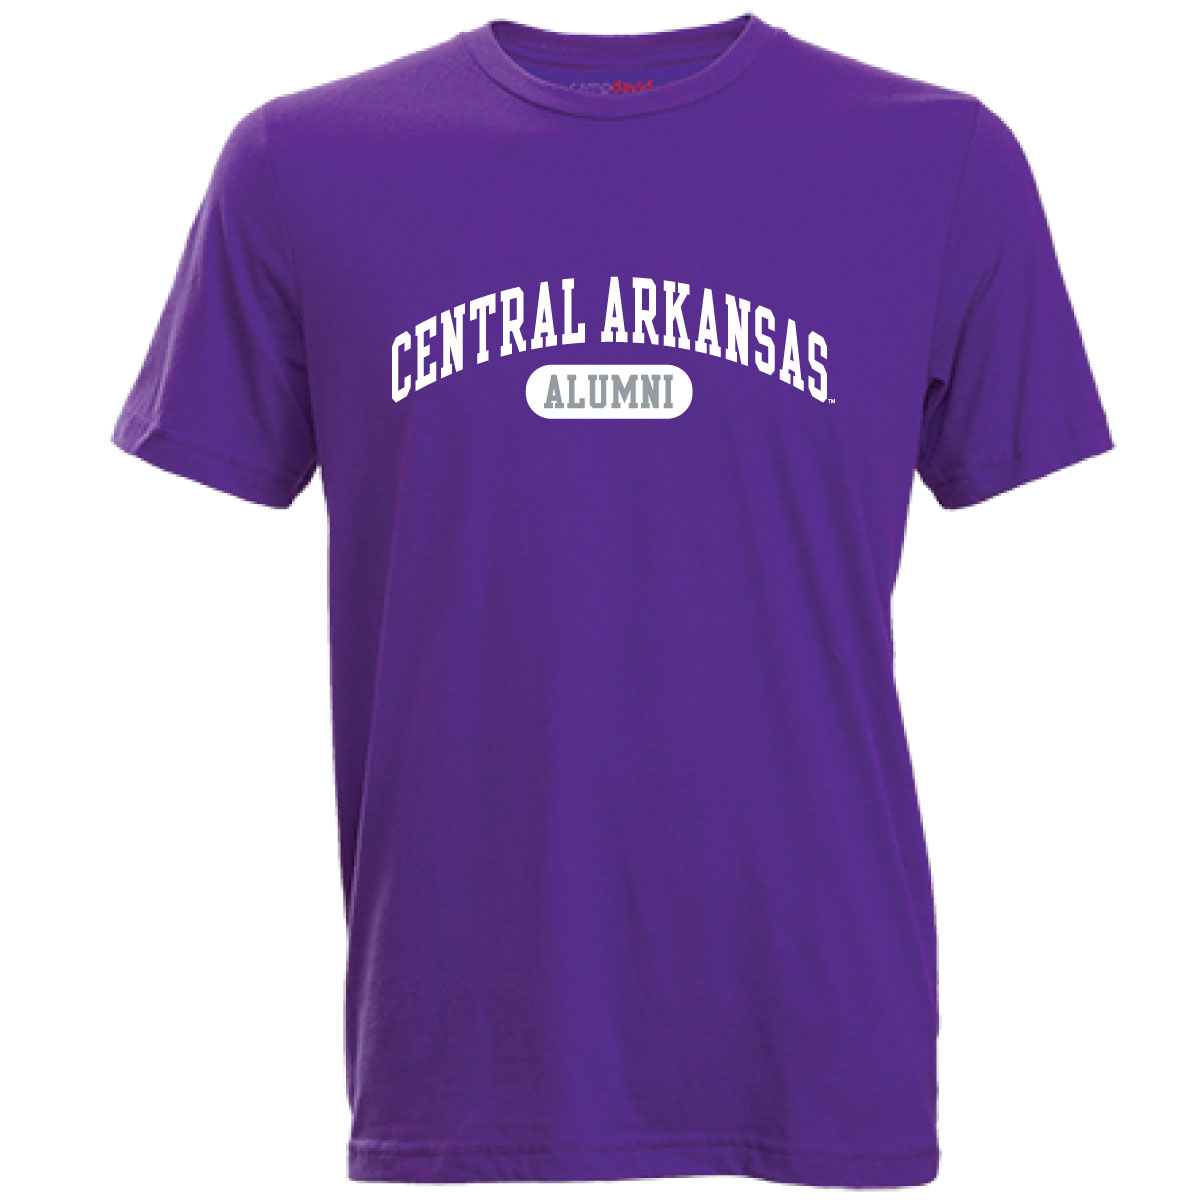 Central Arkansas Alumni Tee